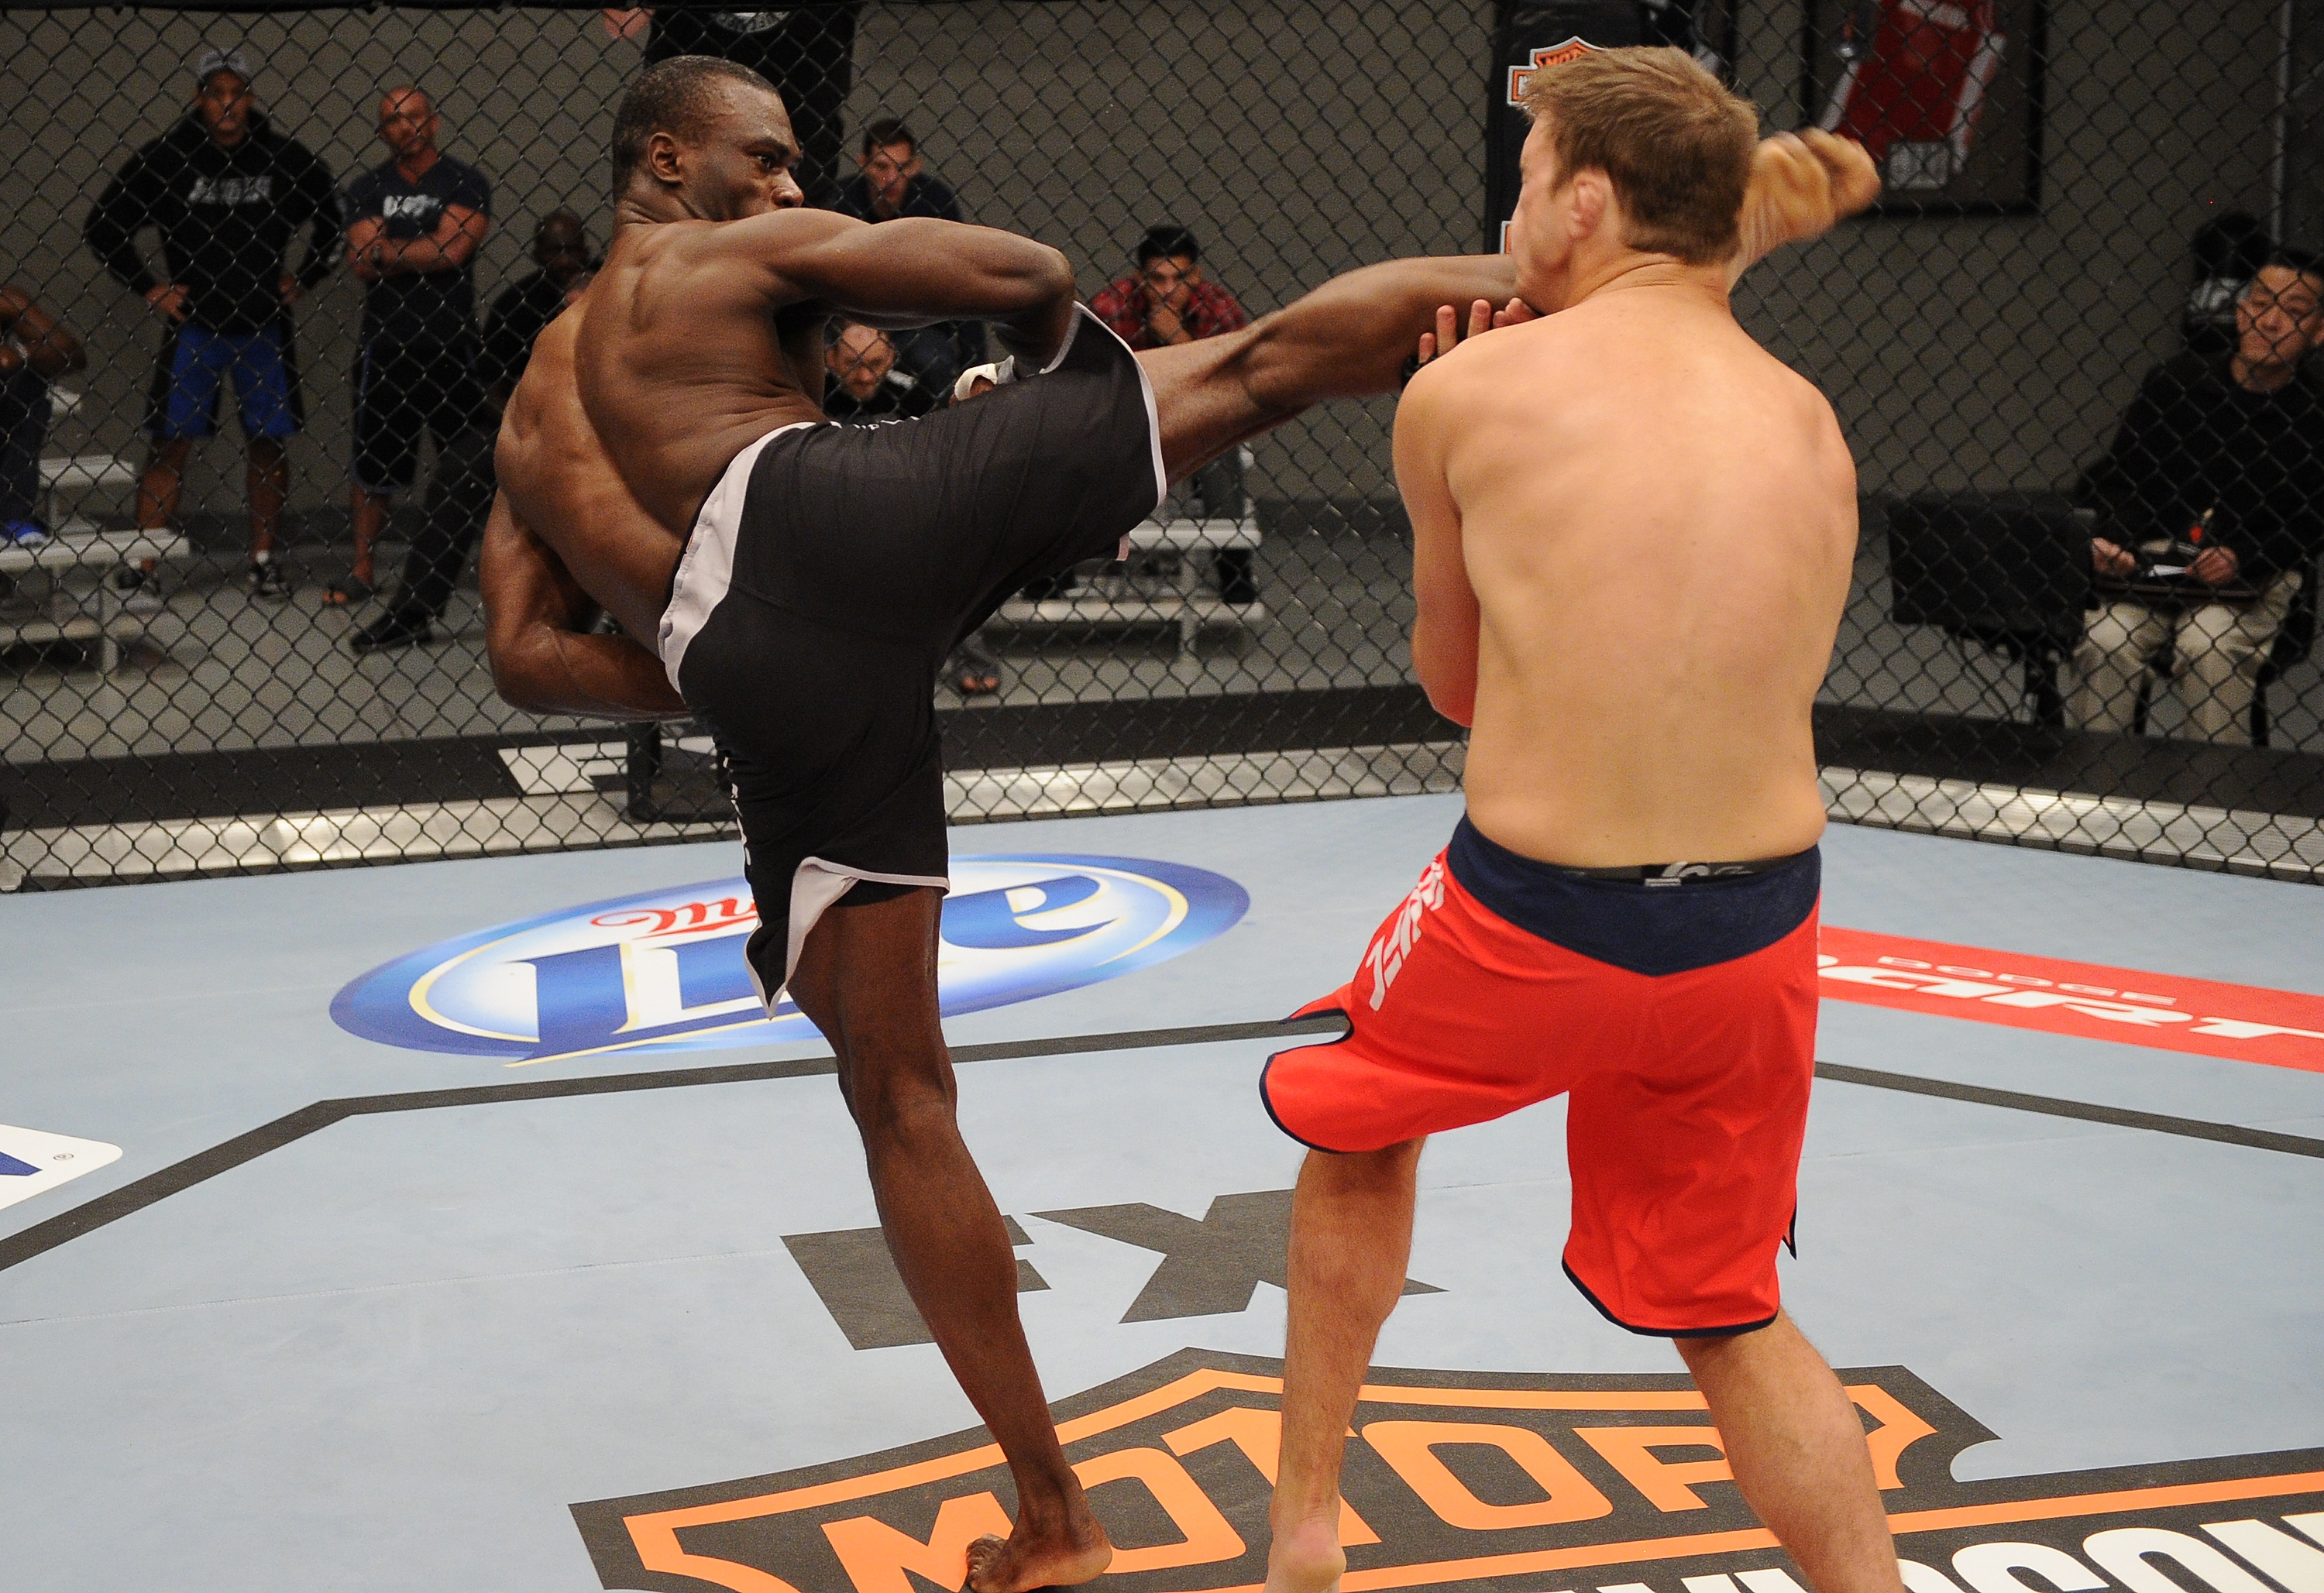 Uriah Hall feared for the safety of Adam Cella after his vicious KO. (Getty Images)